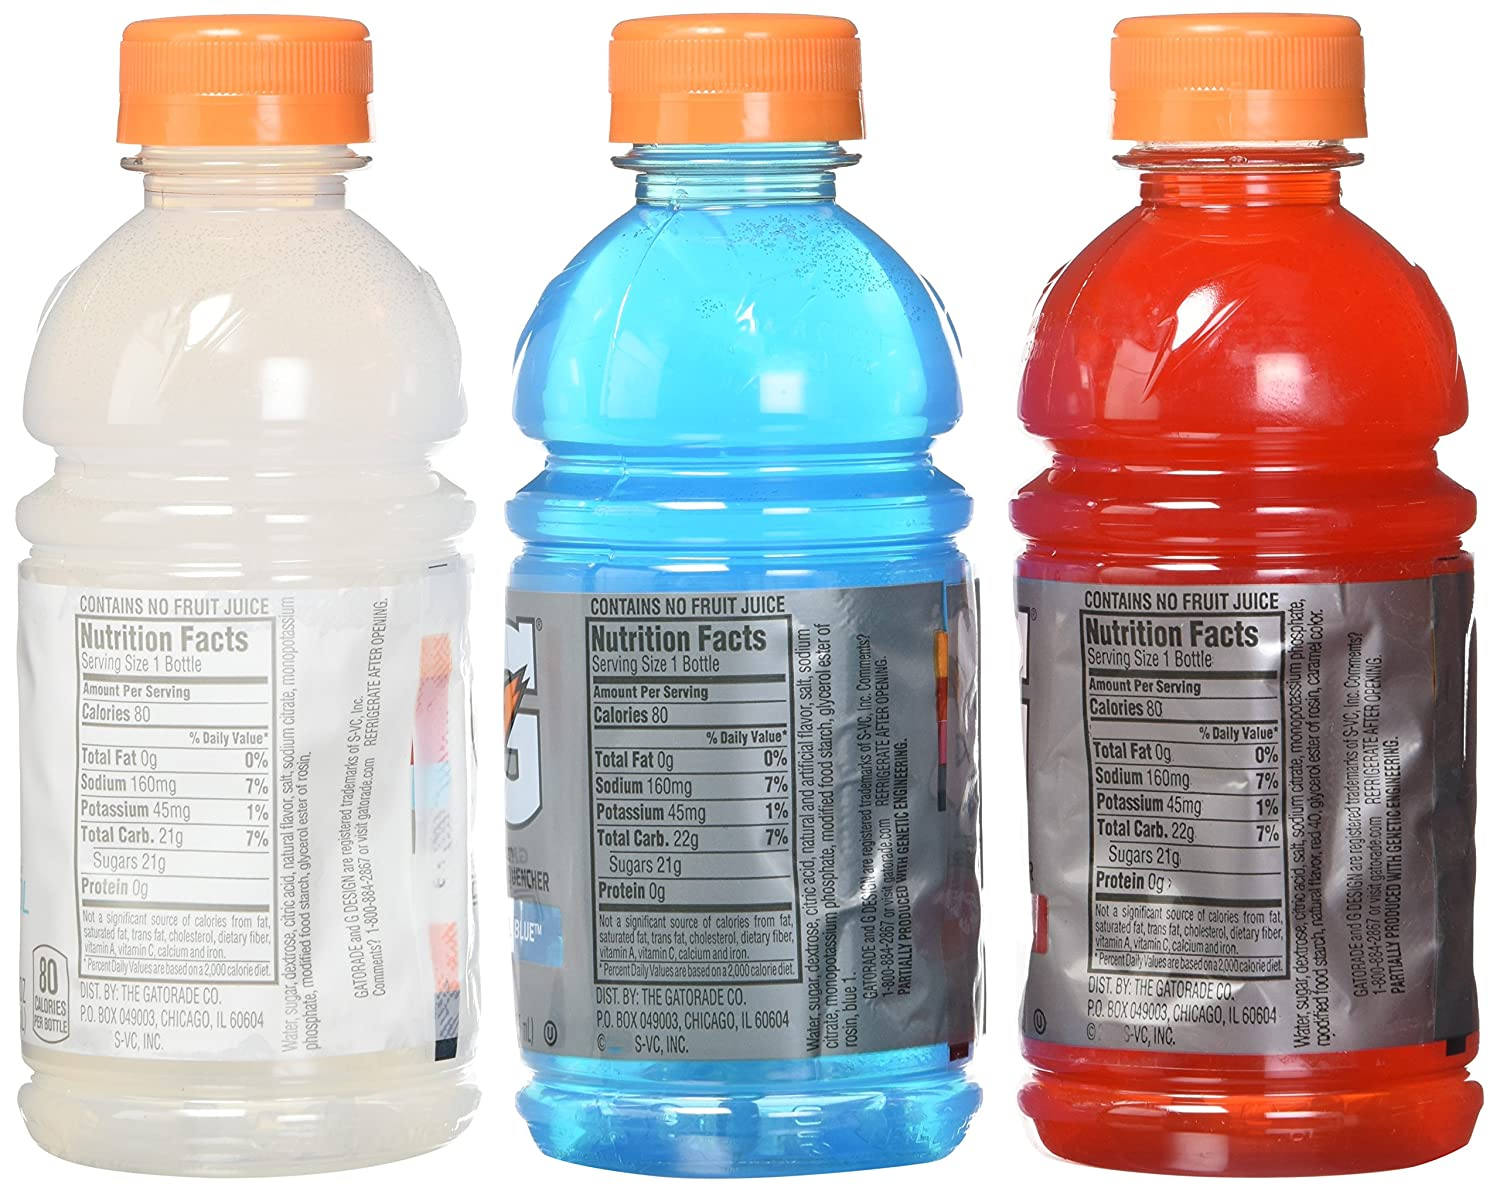 Amazon.com : Gatorade Beverage Liberty Limited Time Offer (Pack of 28) 12 Fl Oz, 336 Fluid Ounce : Grocery & Gourmet Food